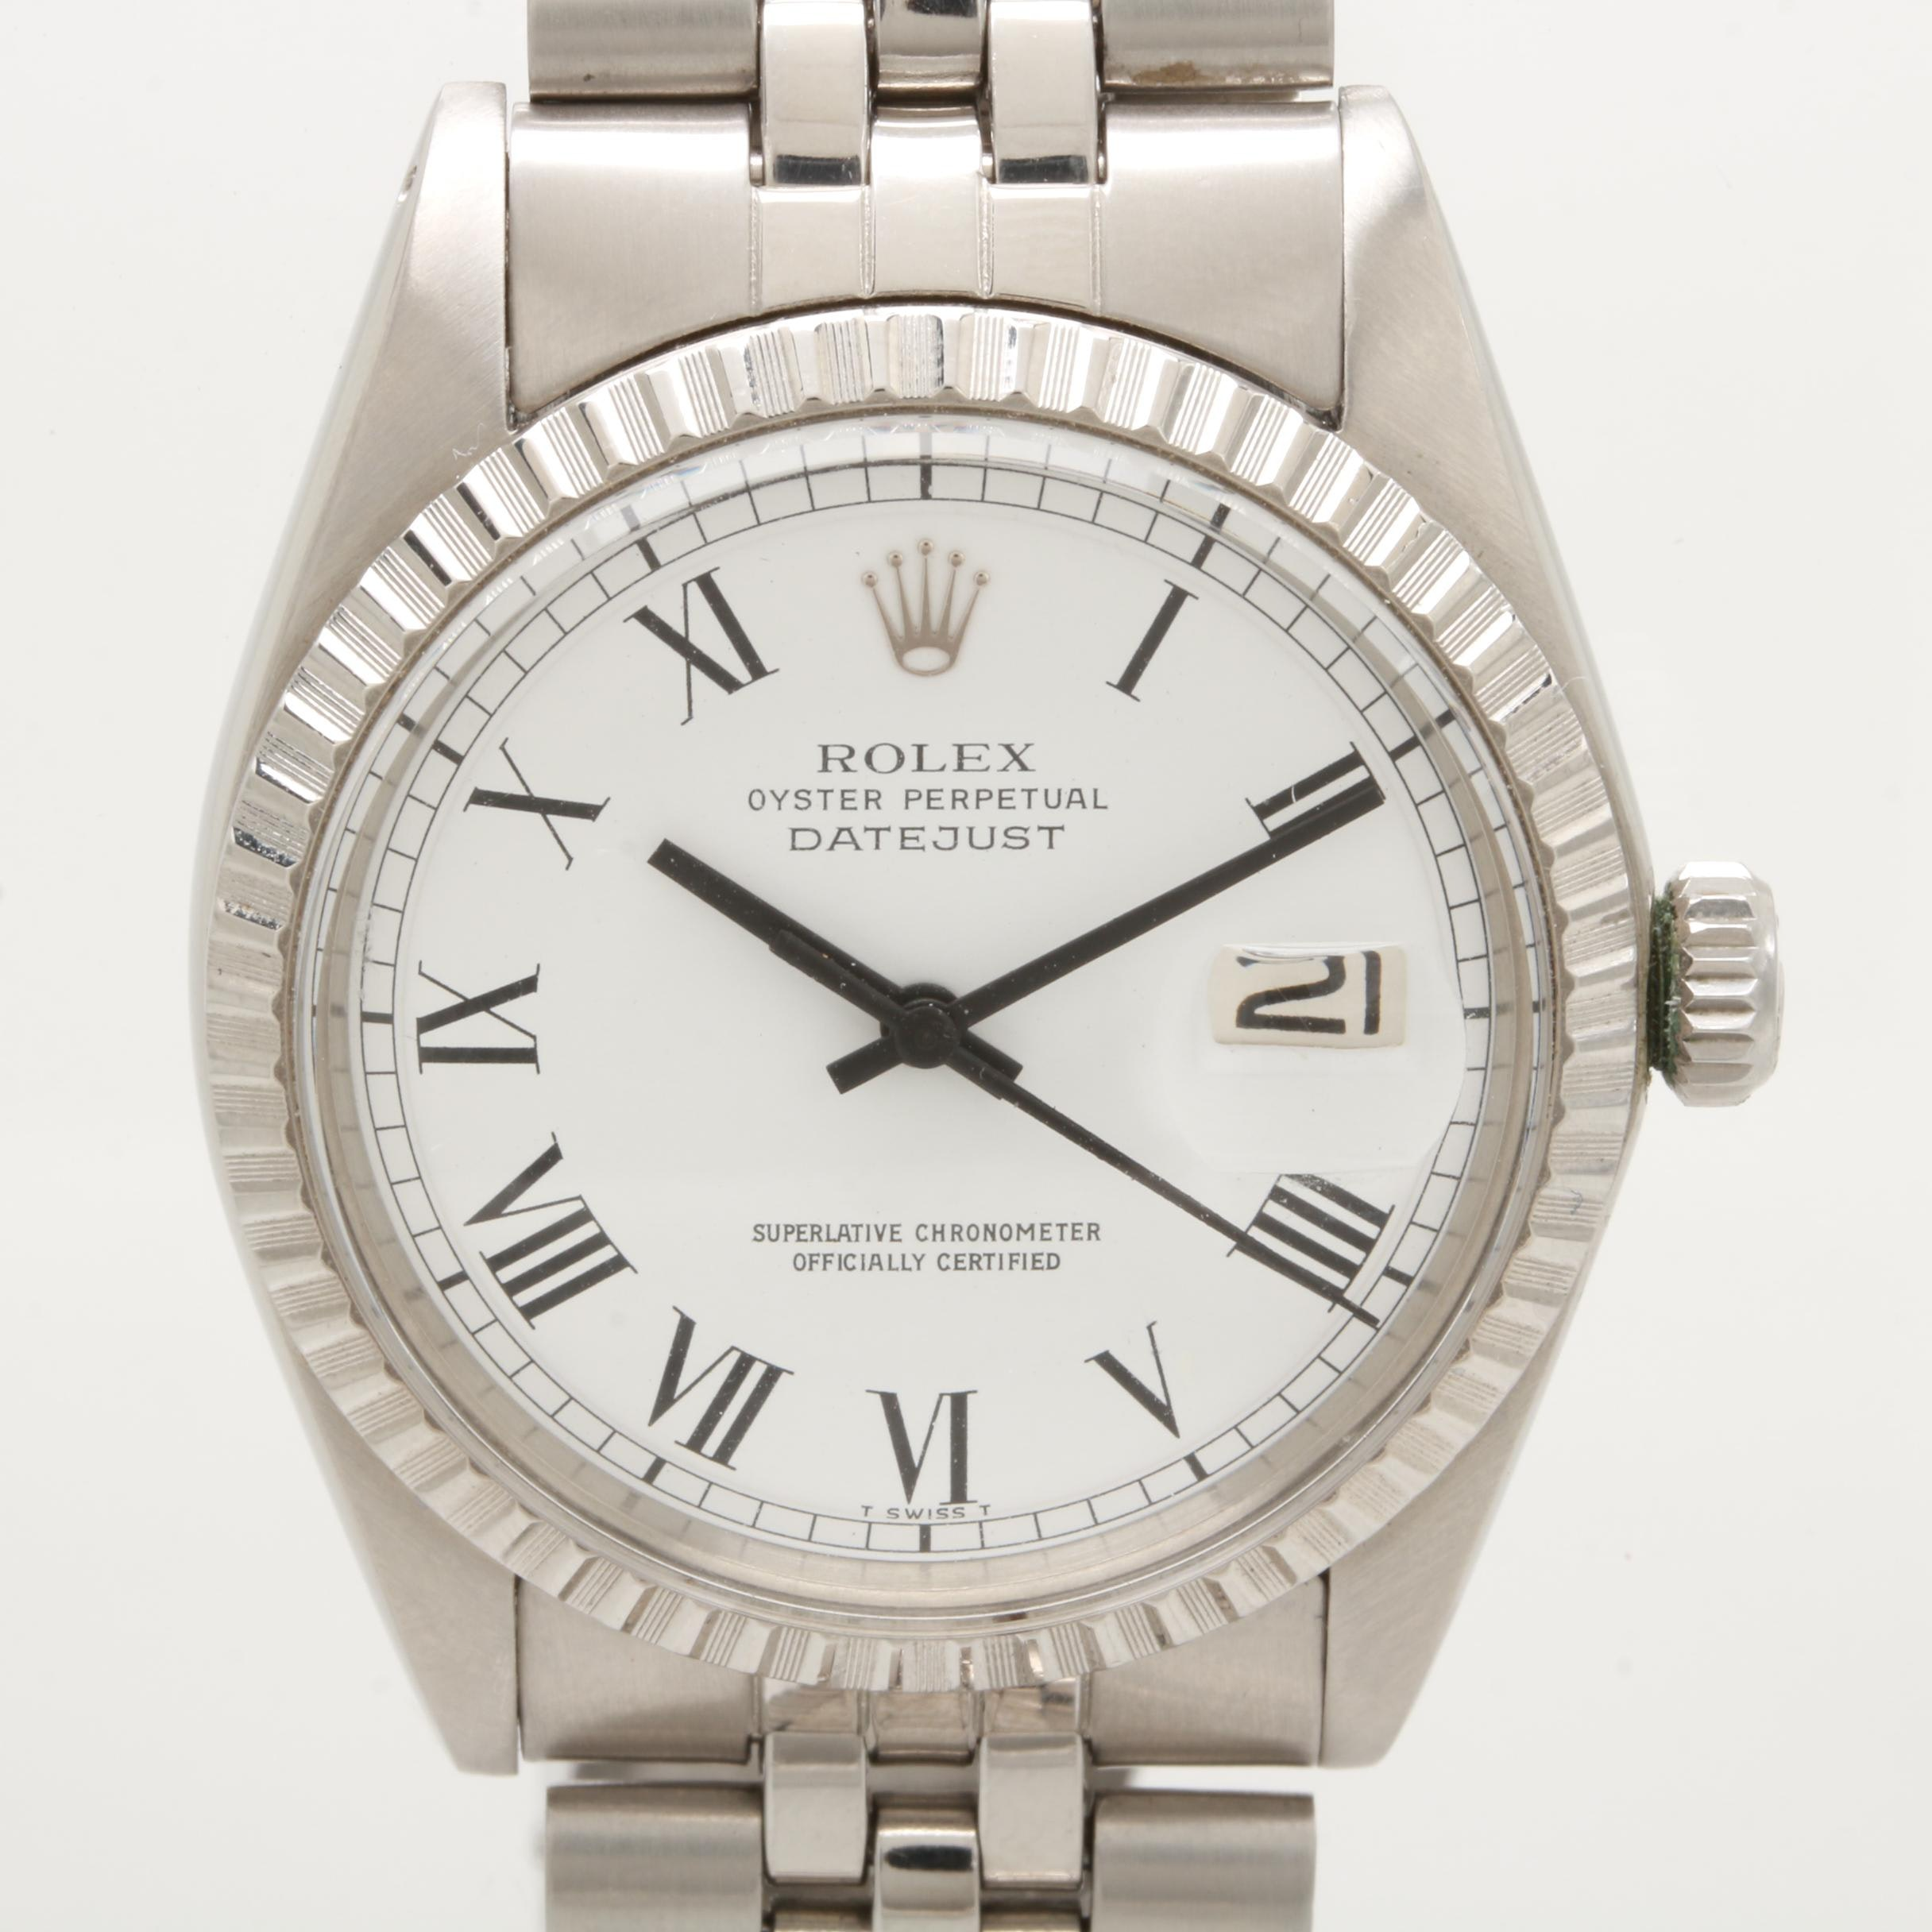 Circa 1975 Rolex Datejust Stainless Steel Wristwatch with Buckley Dial